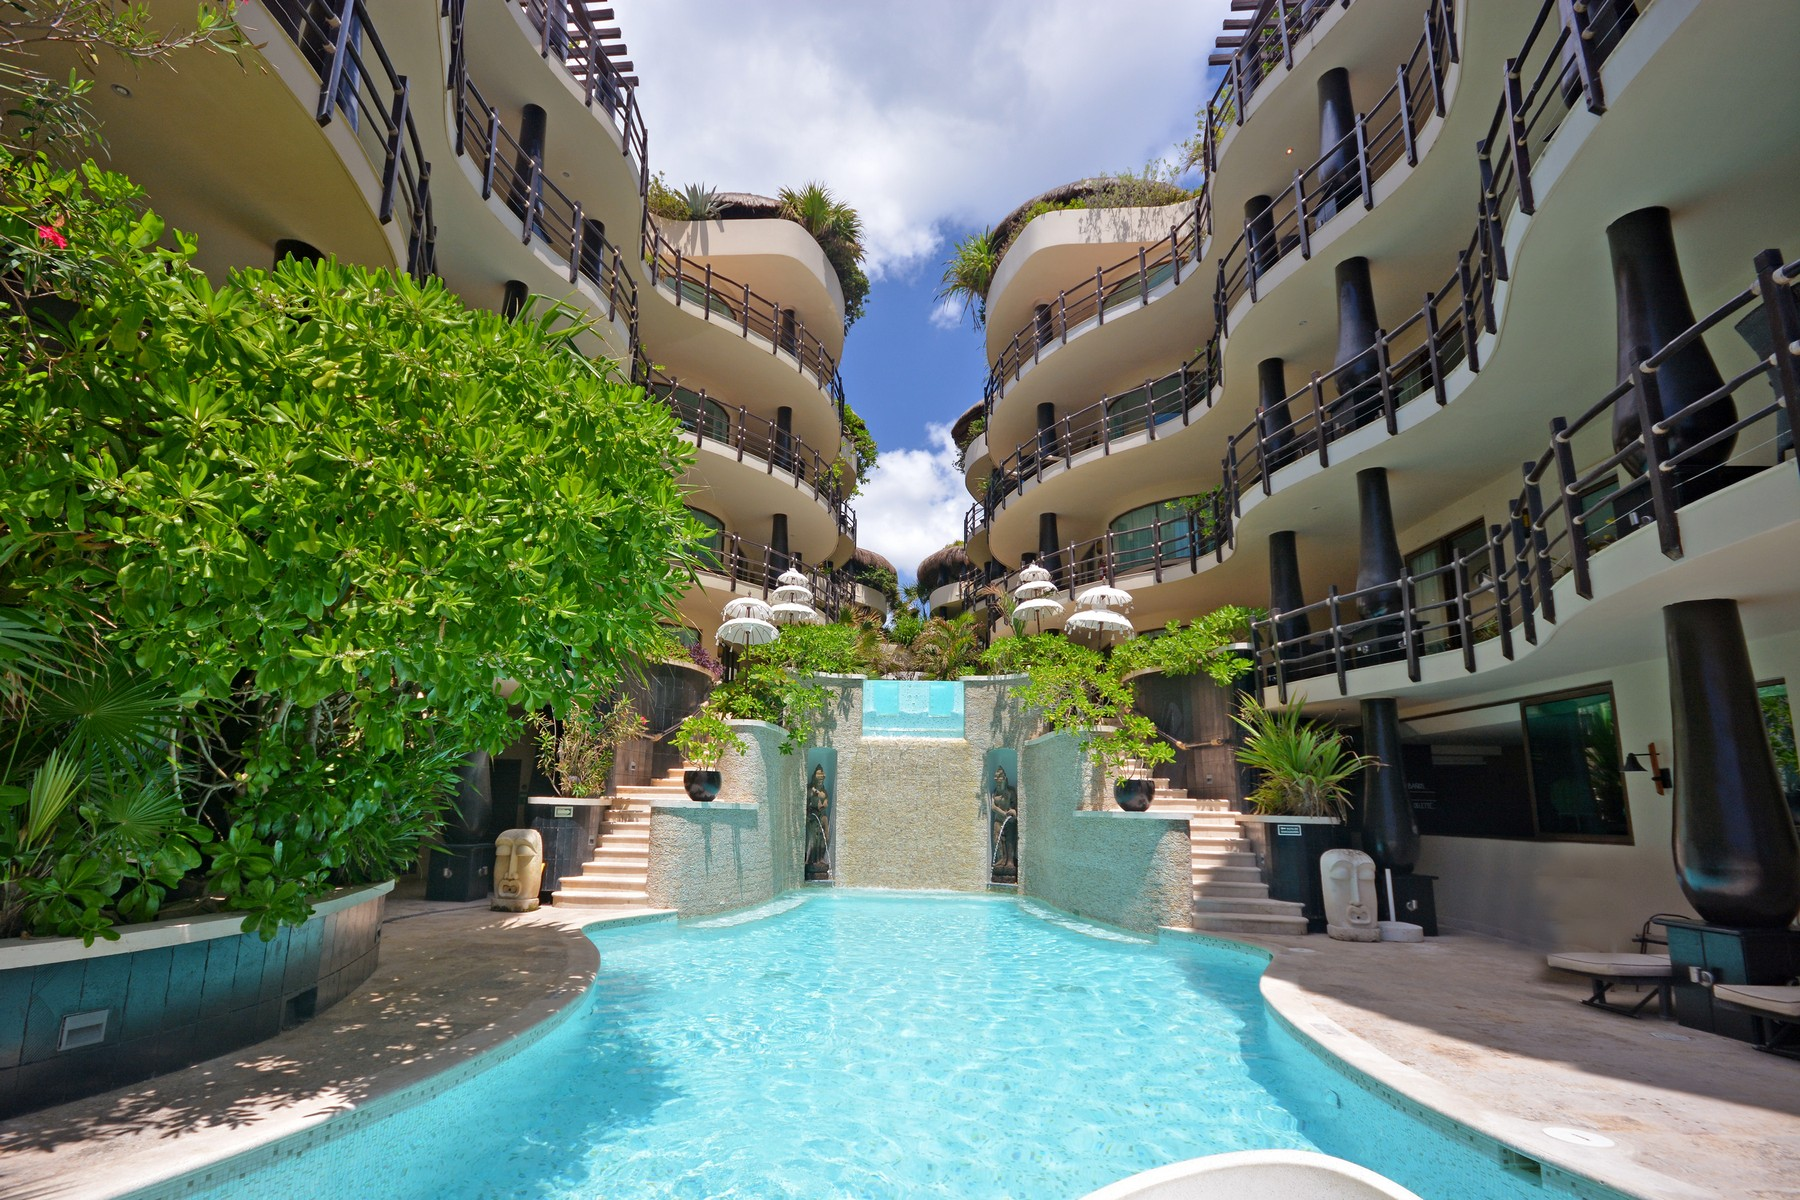 Condominium for Sale at SANCTUARY OF THE SEA Oceanfront, 3rd Level, El Taj Calle 1era Nte, entre 12 y 14 Nte. Playa Del Carmen, Quintana Roo 77710 Mexico